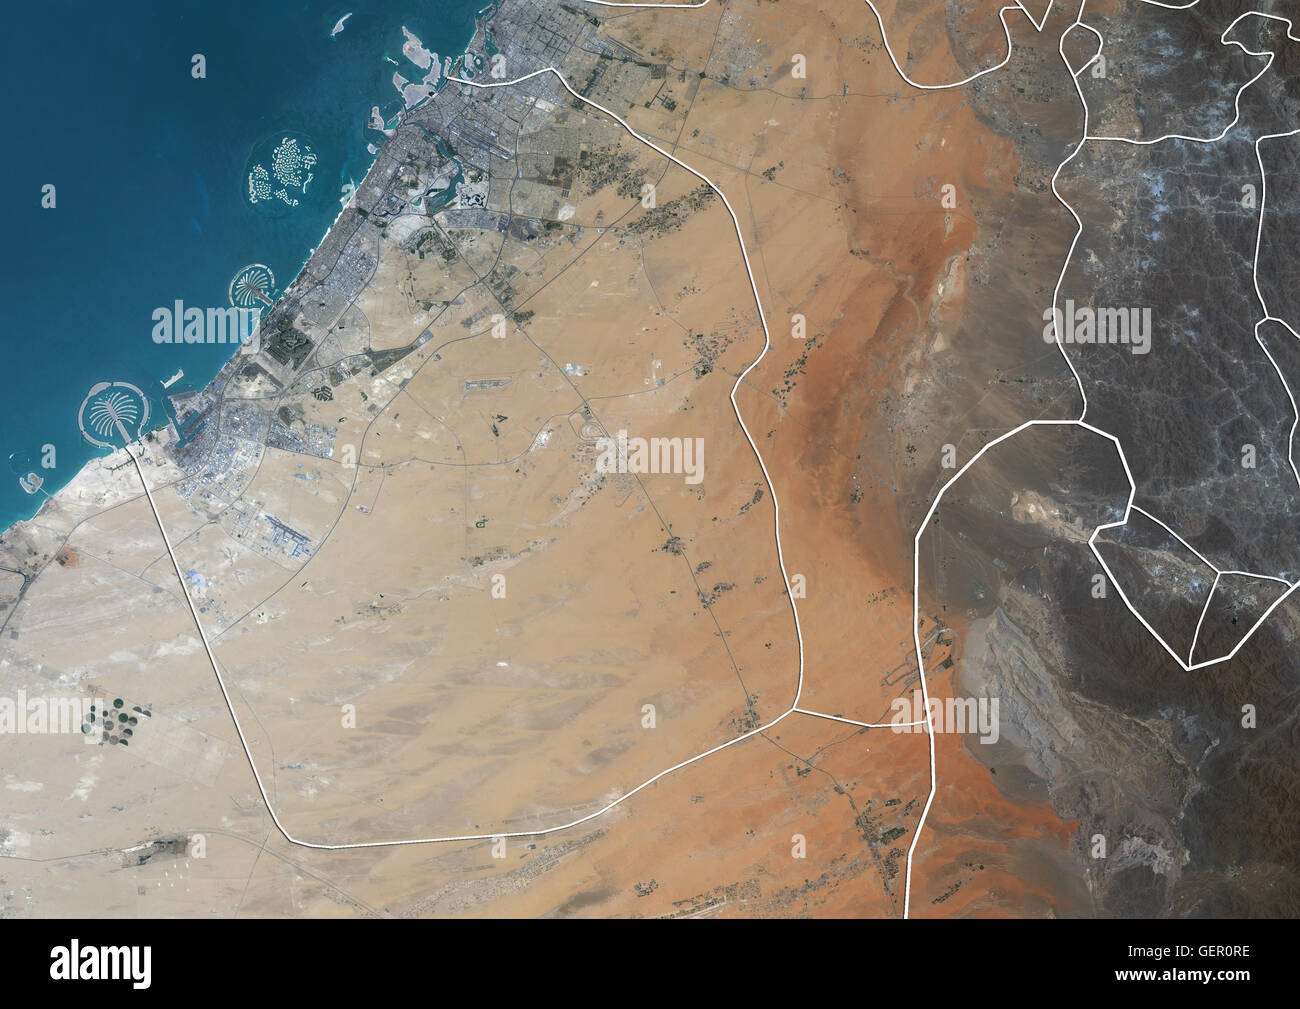 Dubai map stock photos dubai map stock images alamy satellite view of the emirate of dubai united arab emirates with country boundaries gumiabroncs Images